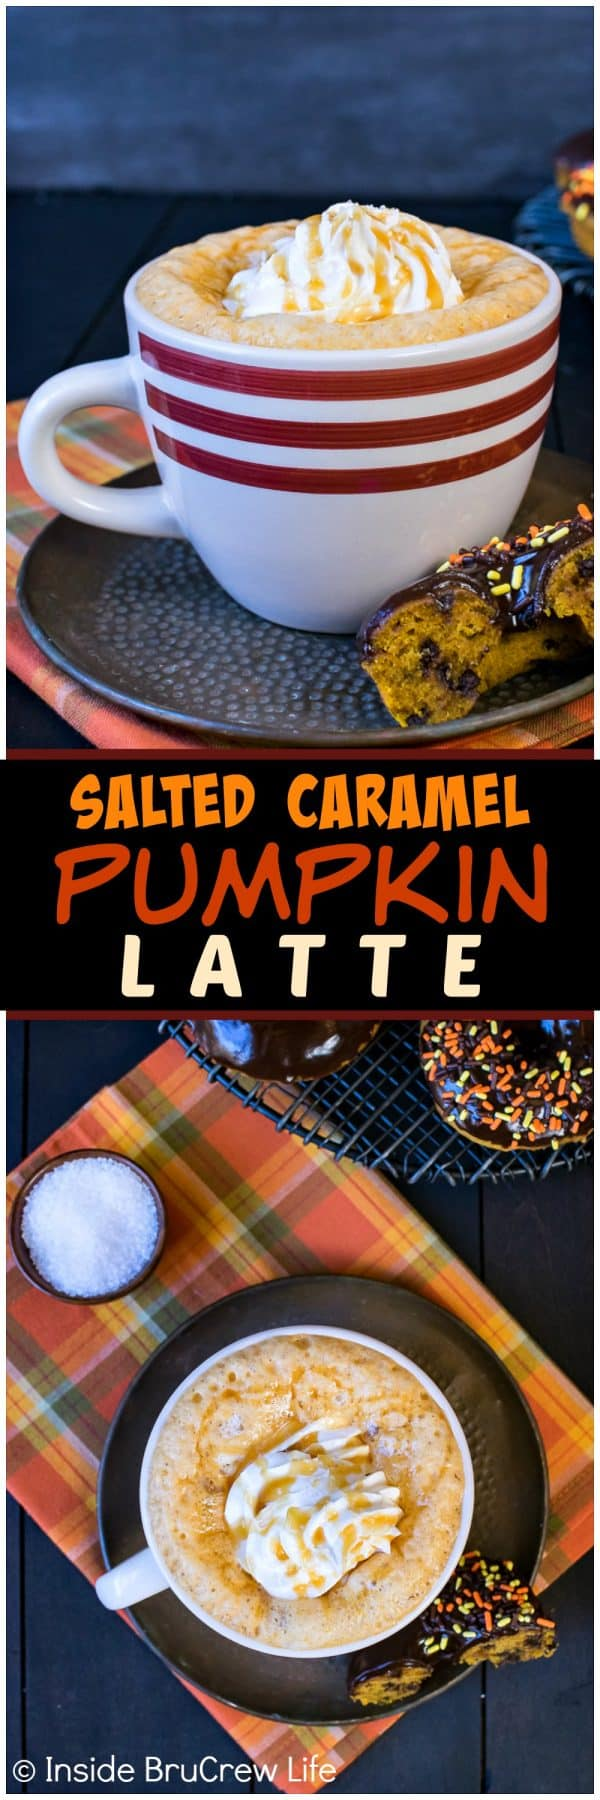 Salted Caramel Pumpkin Latte - this easy coffee drink is loaded with fall flavor. An easy recipe to make at home that will save you money.